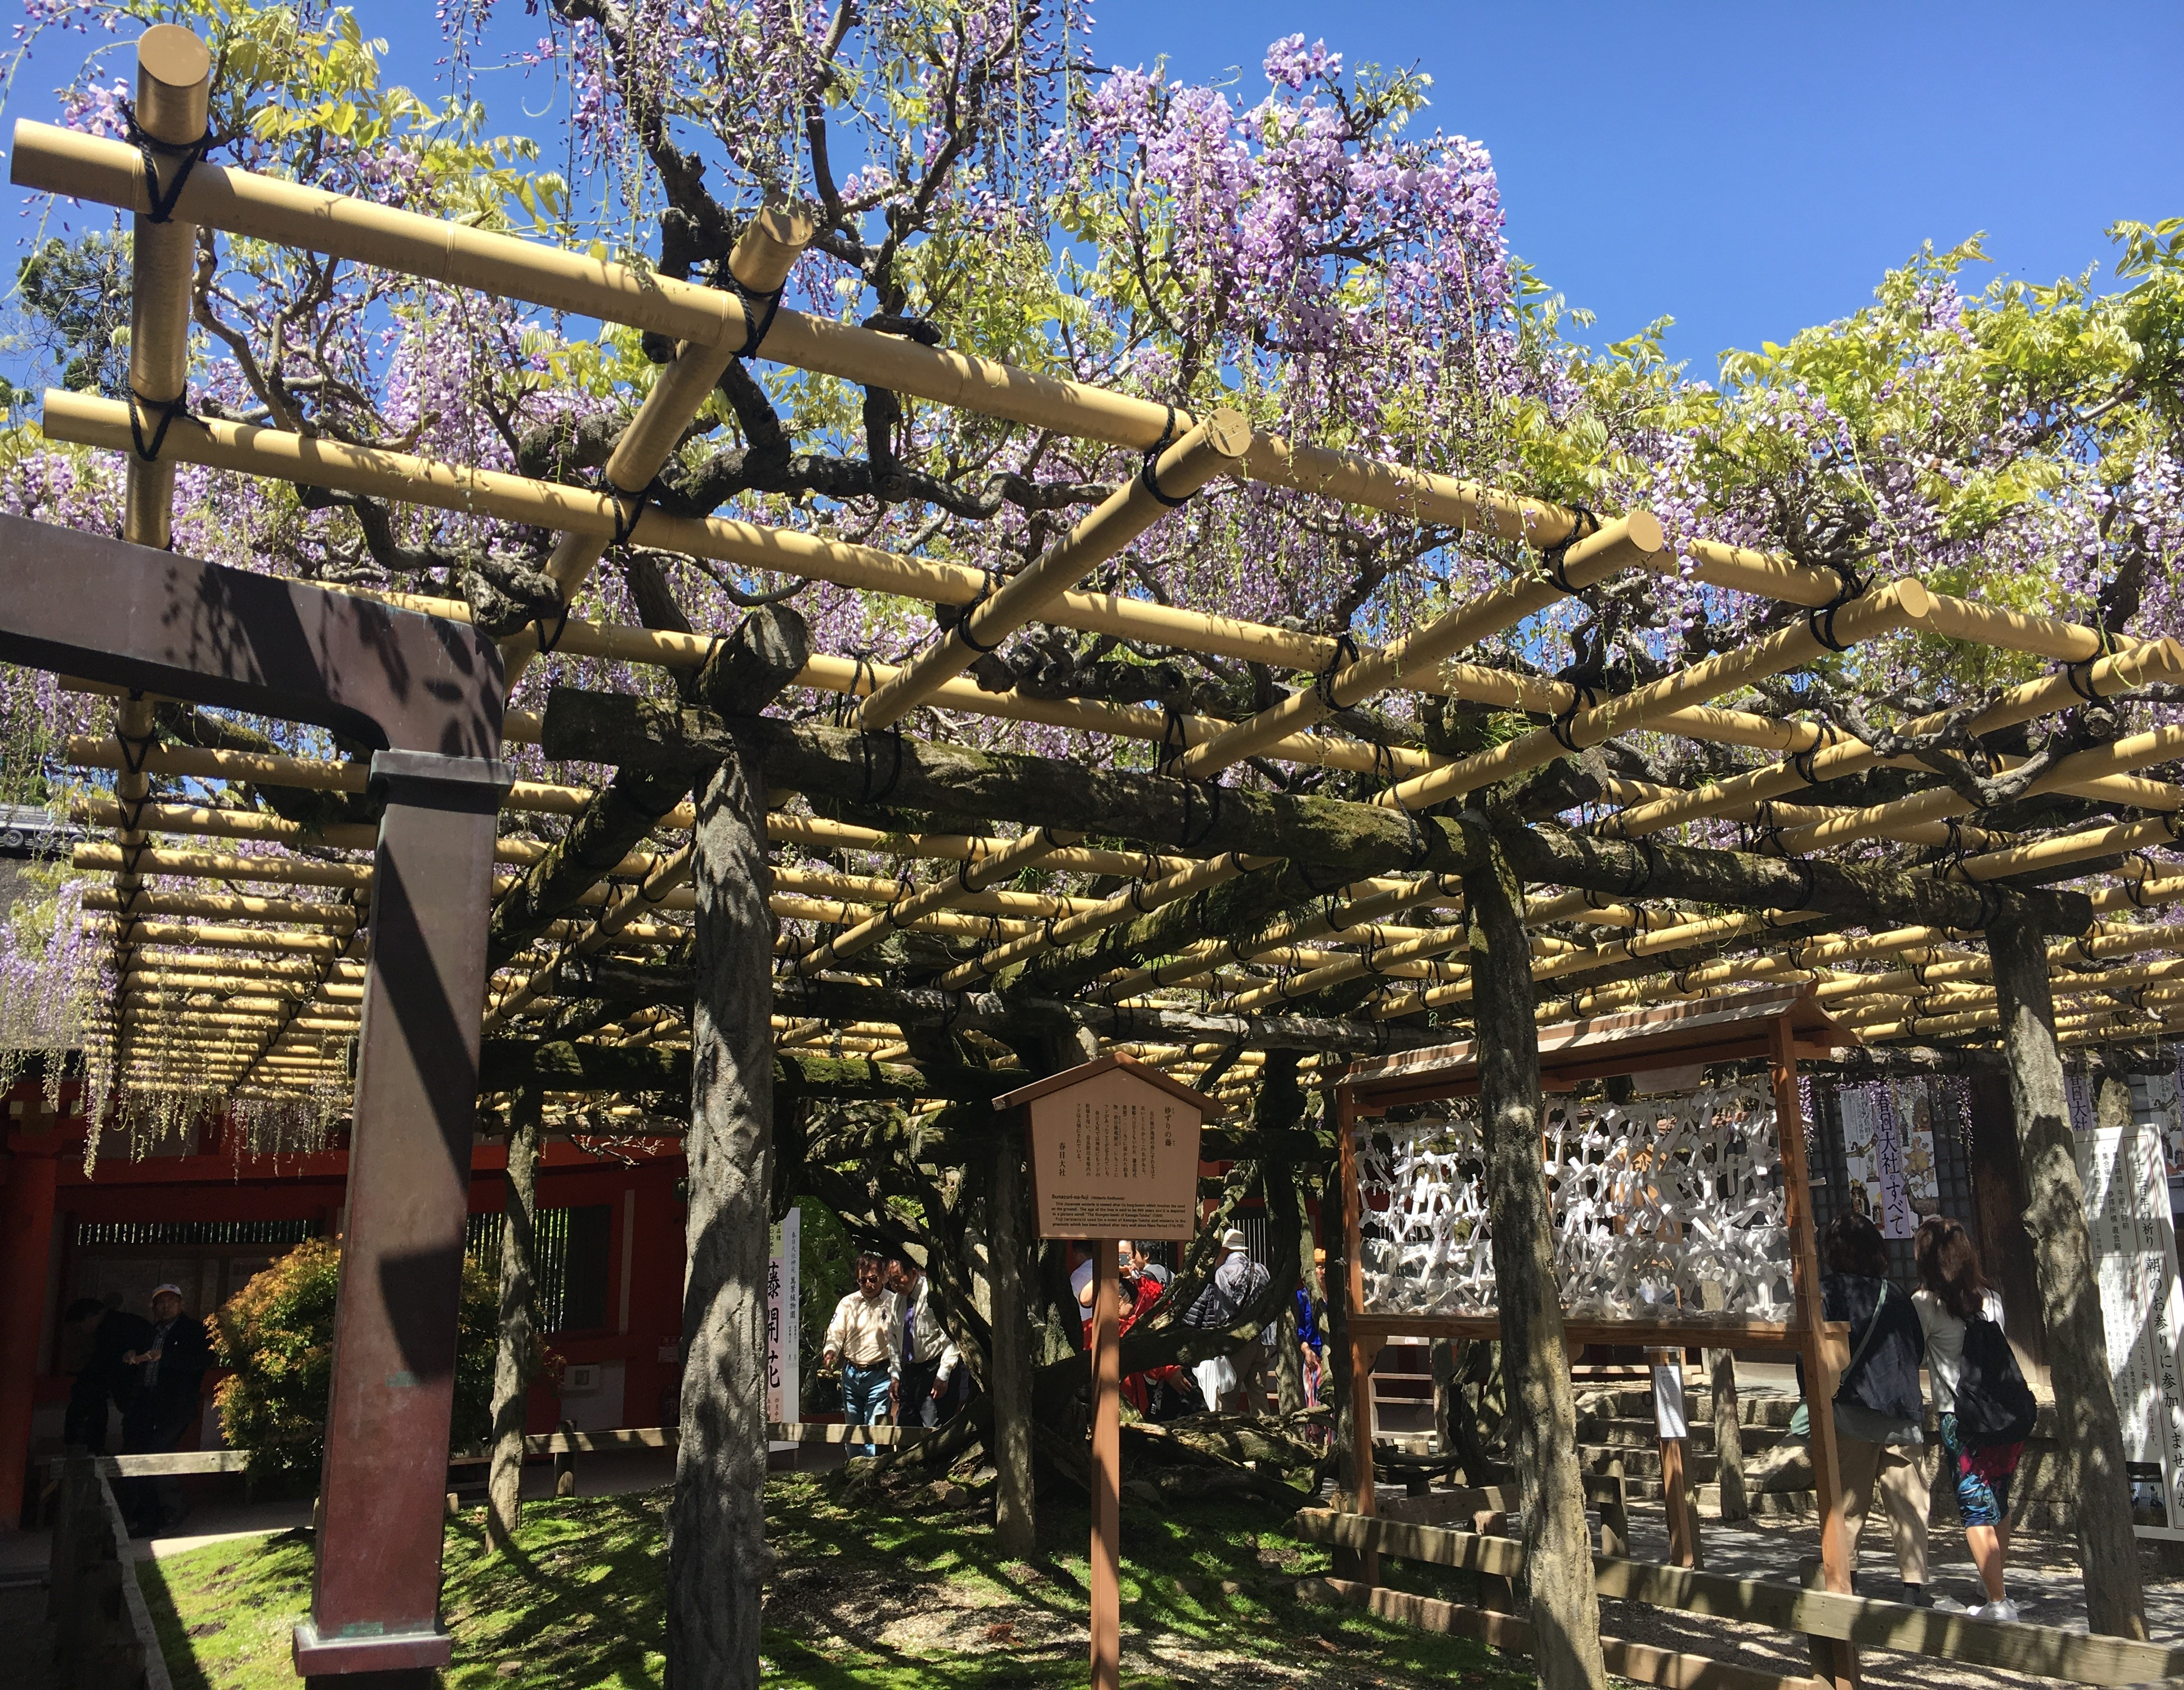 700 year old wisteria plant at kasuga taisha in full bloom